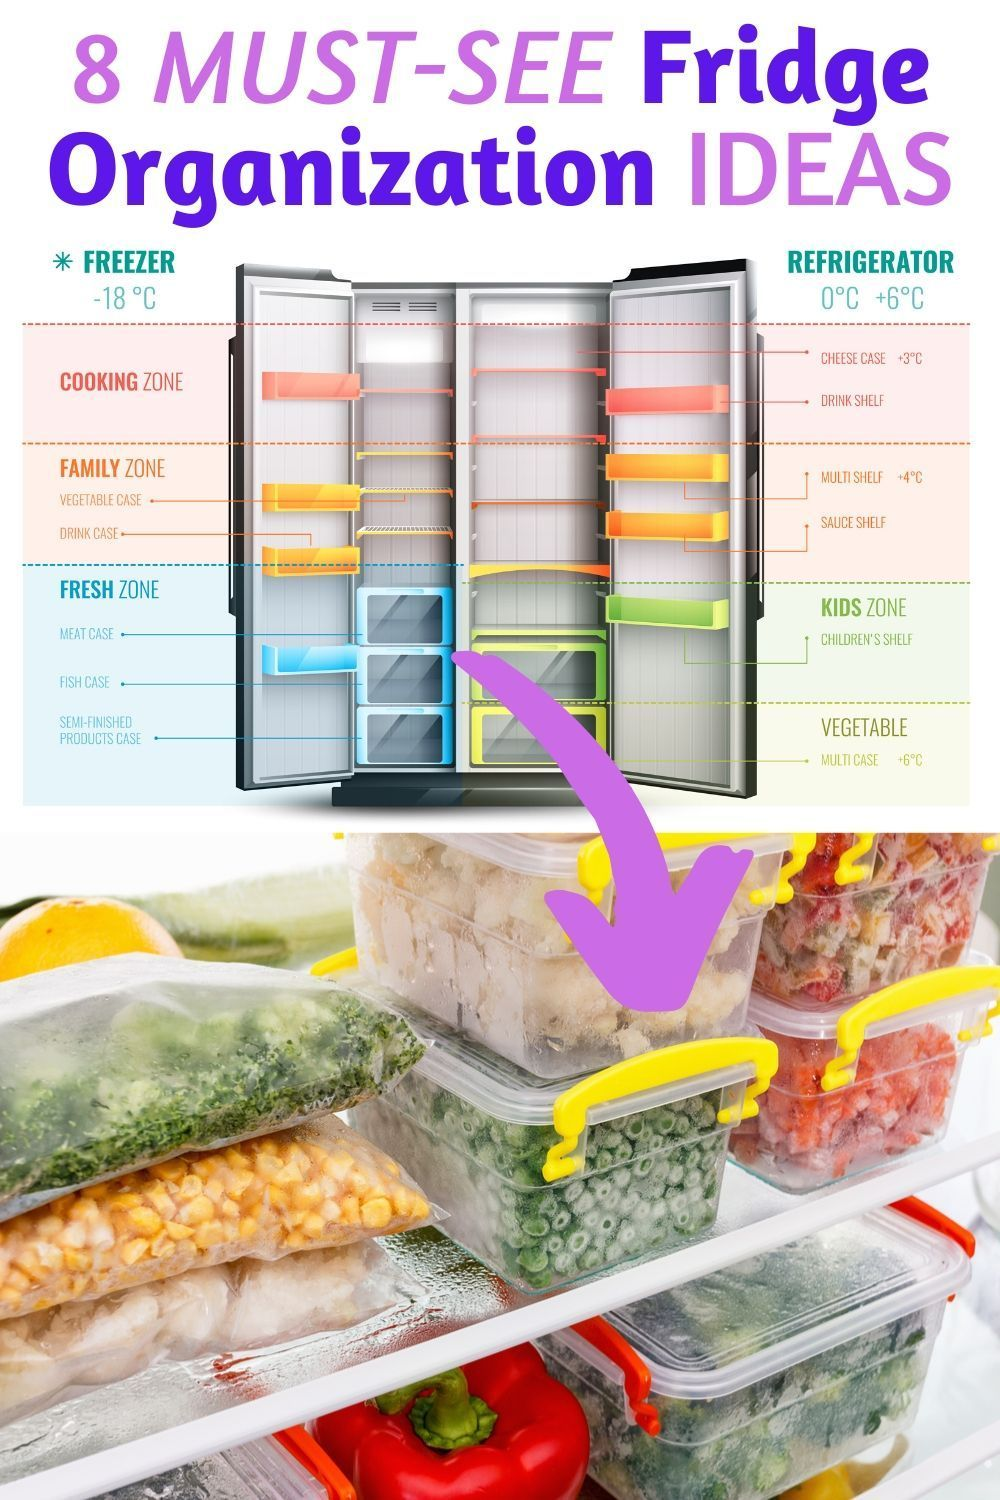 8 fridge organization ideas so you can find what you want